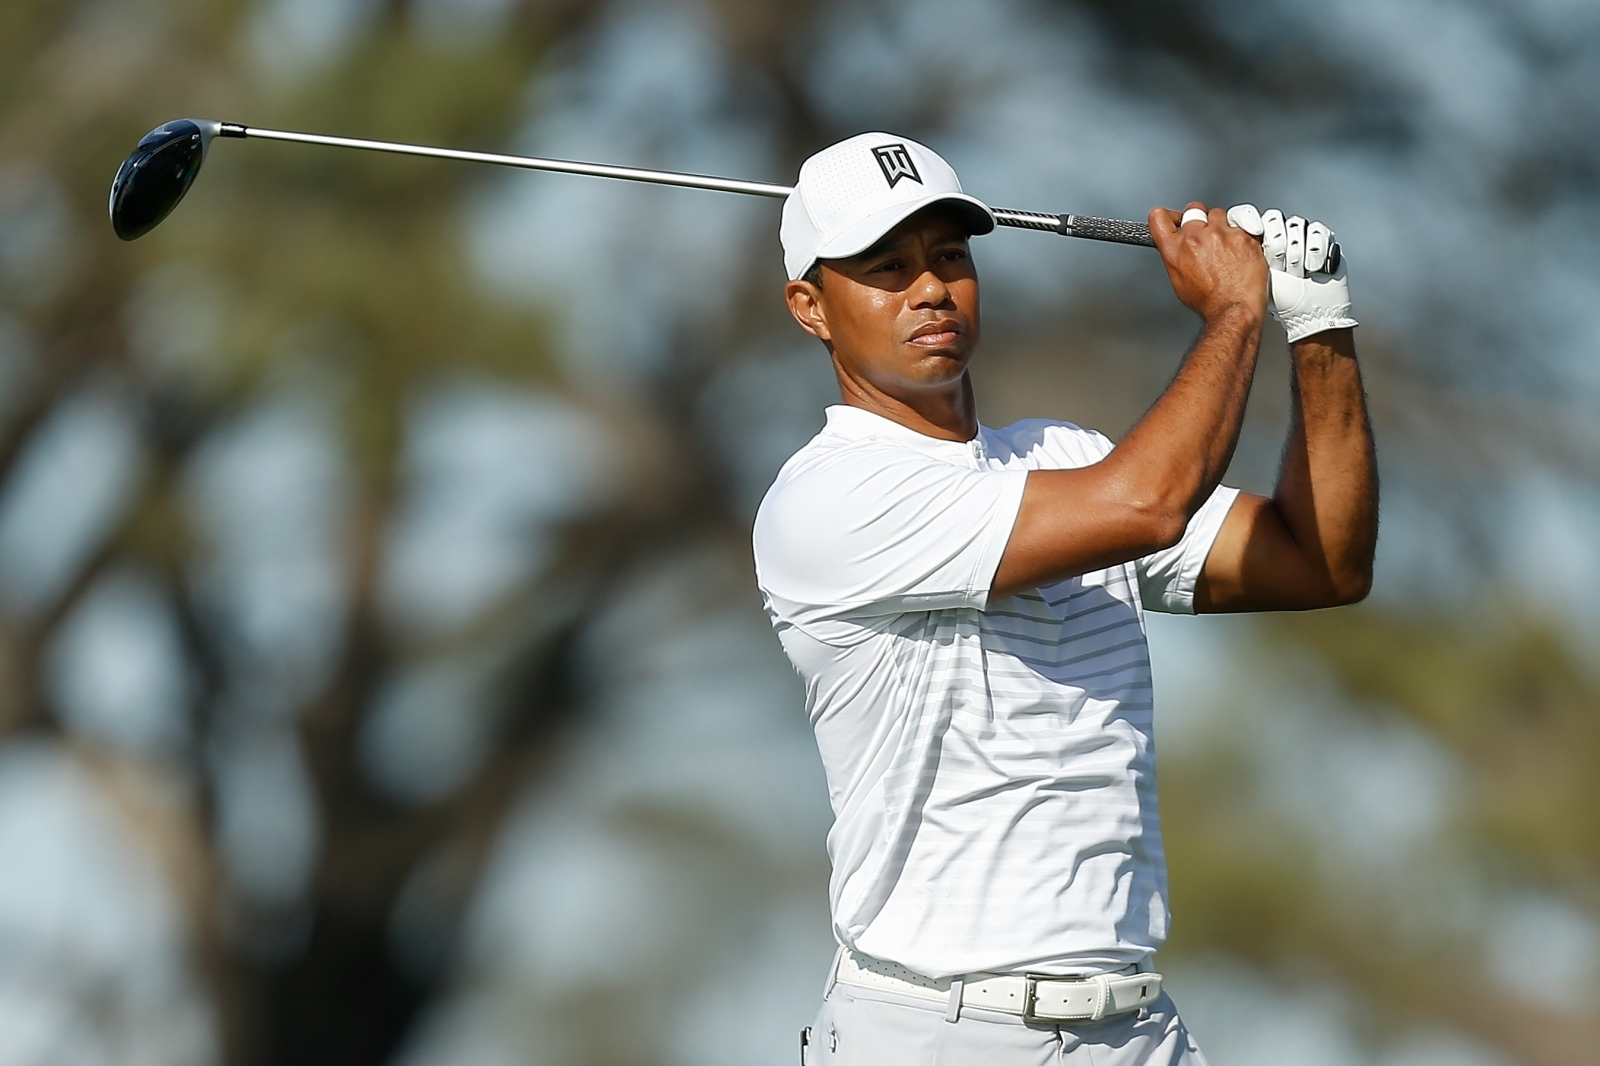 Tiger Woods opens up on Ryder Cup 2018 plans